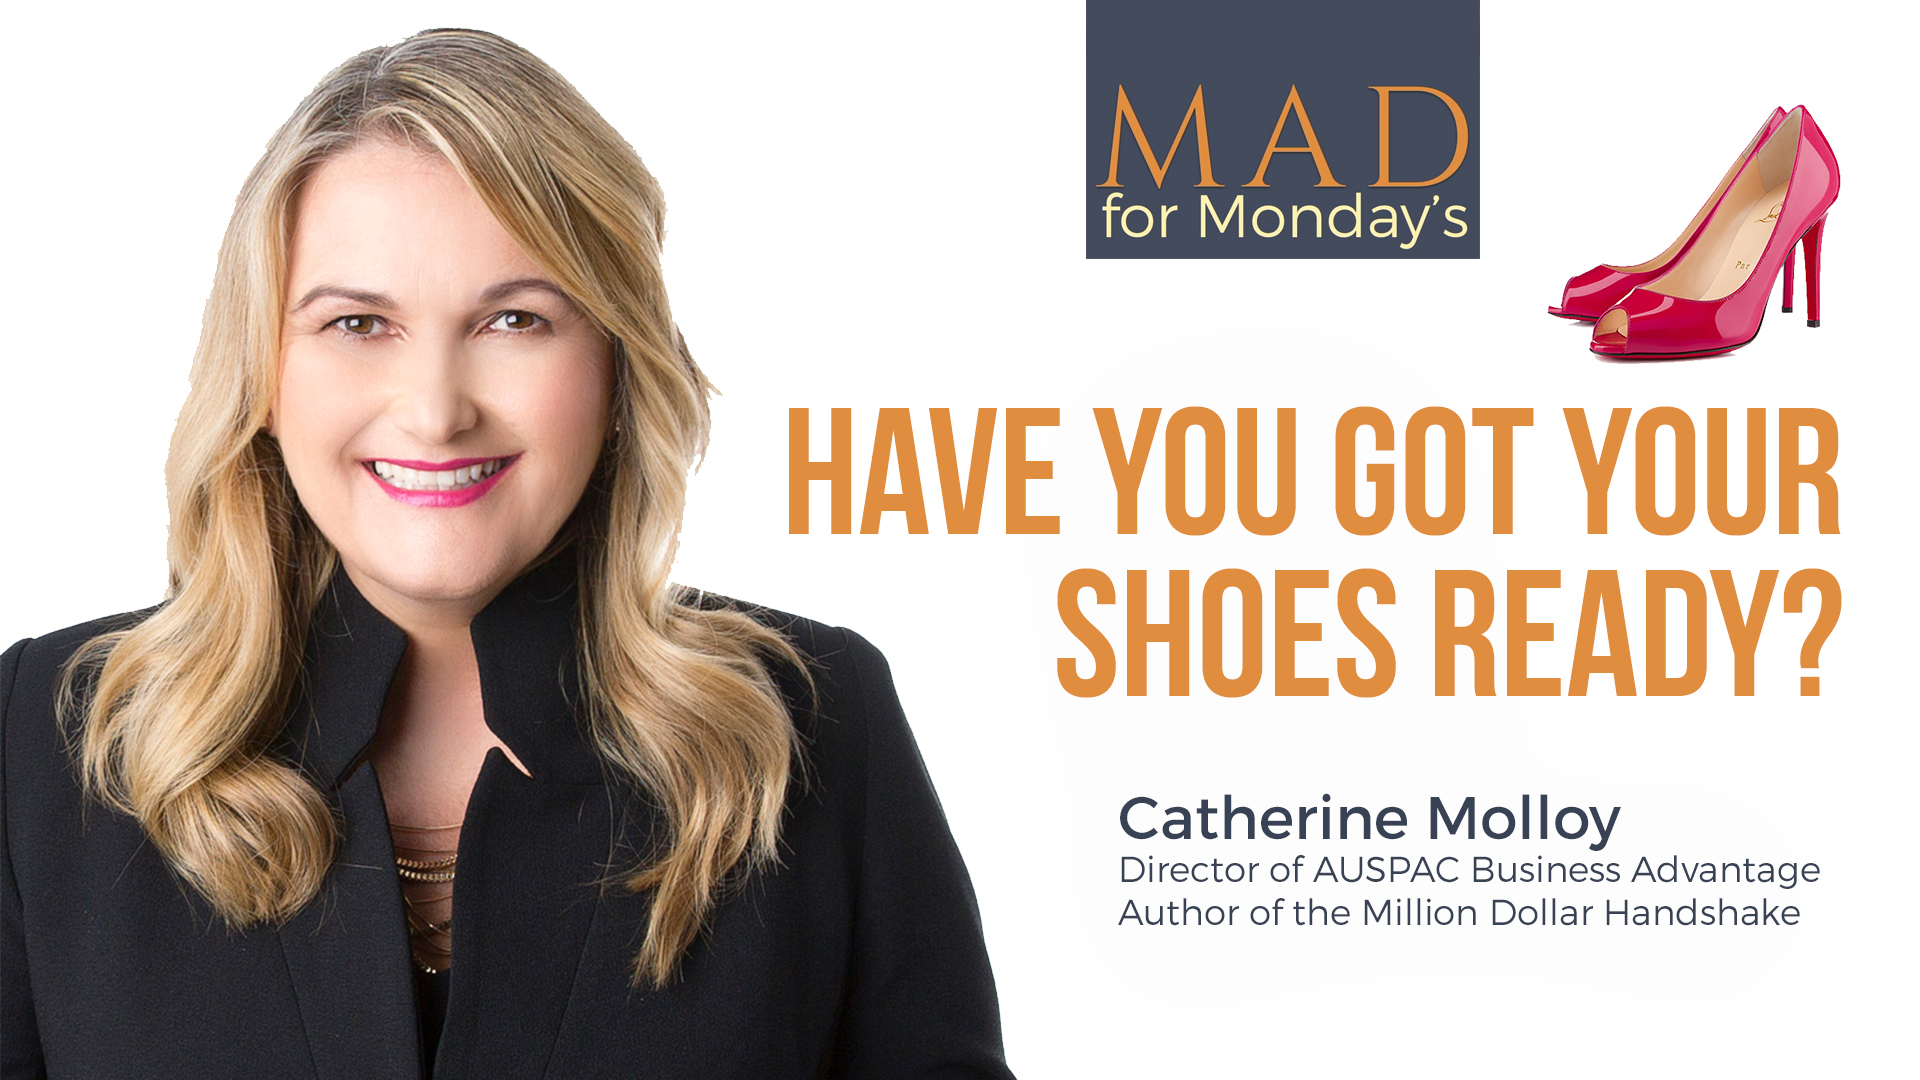 M.A.D. for Mondays – Have you got your shoes ready?